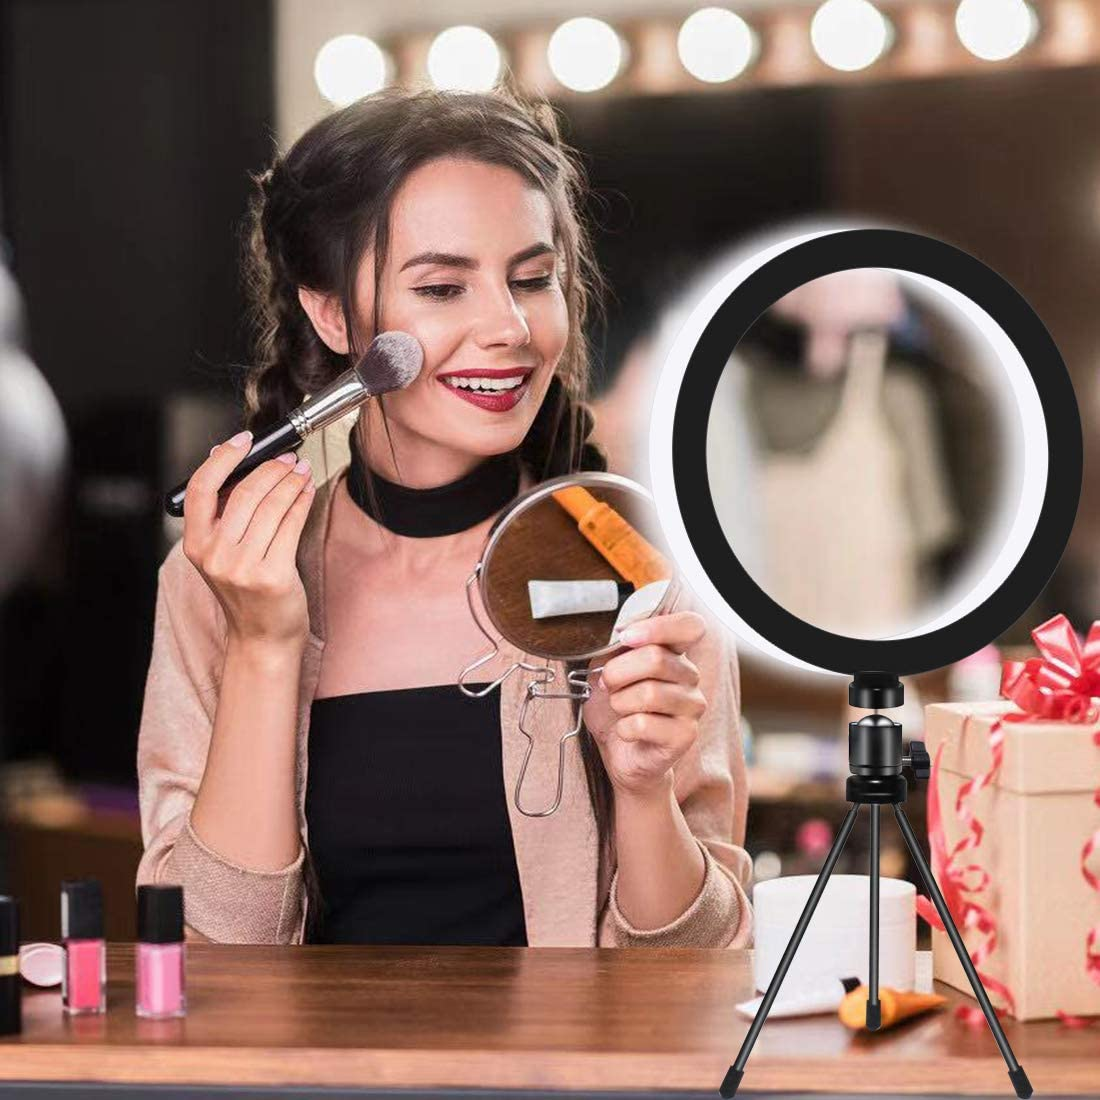 Dimmable Desktop Makeup Ring Light for Photography VANRAY 10 LED Ring Light with Tripod Stand /& Phone Holder for YouTube Video /&Live Streaming Shooting with 3 Light Modes /& 10 Brightness Level